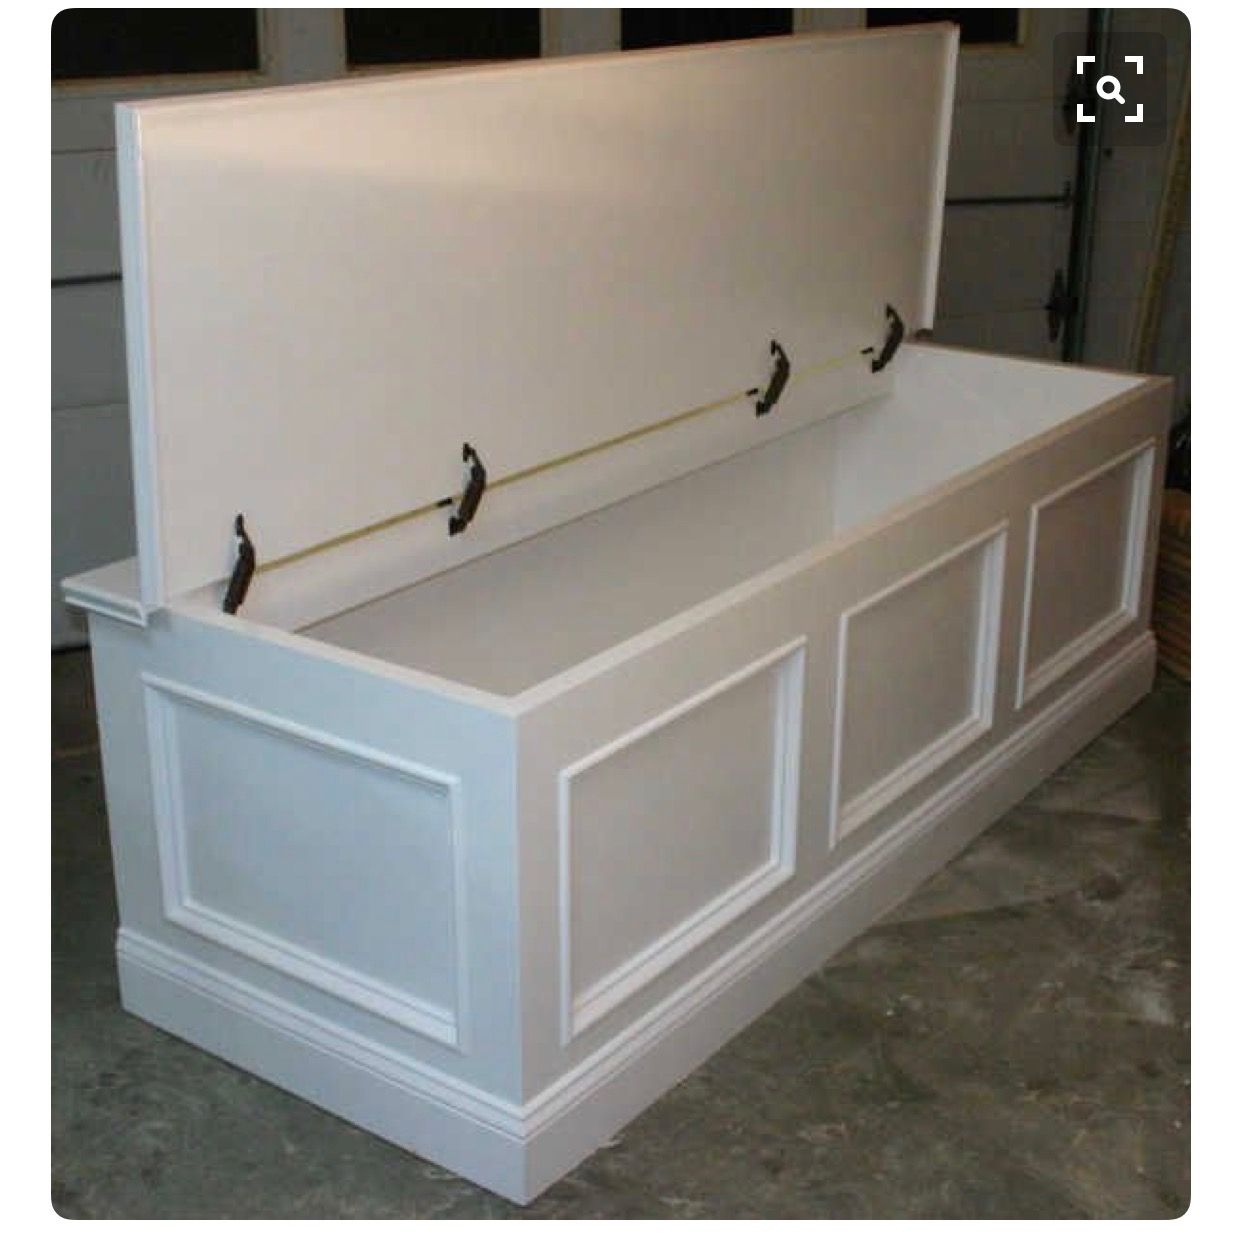 Add Hinge To Breakfast Nook Bench For Additional Storage E